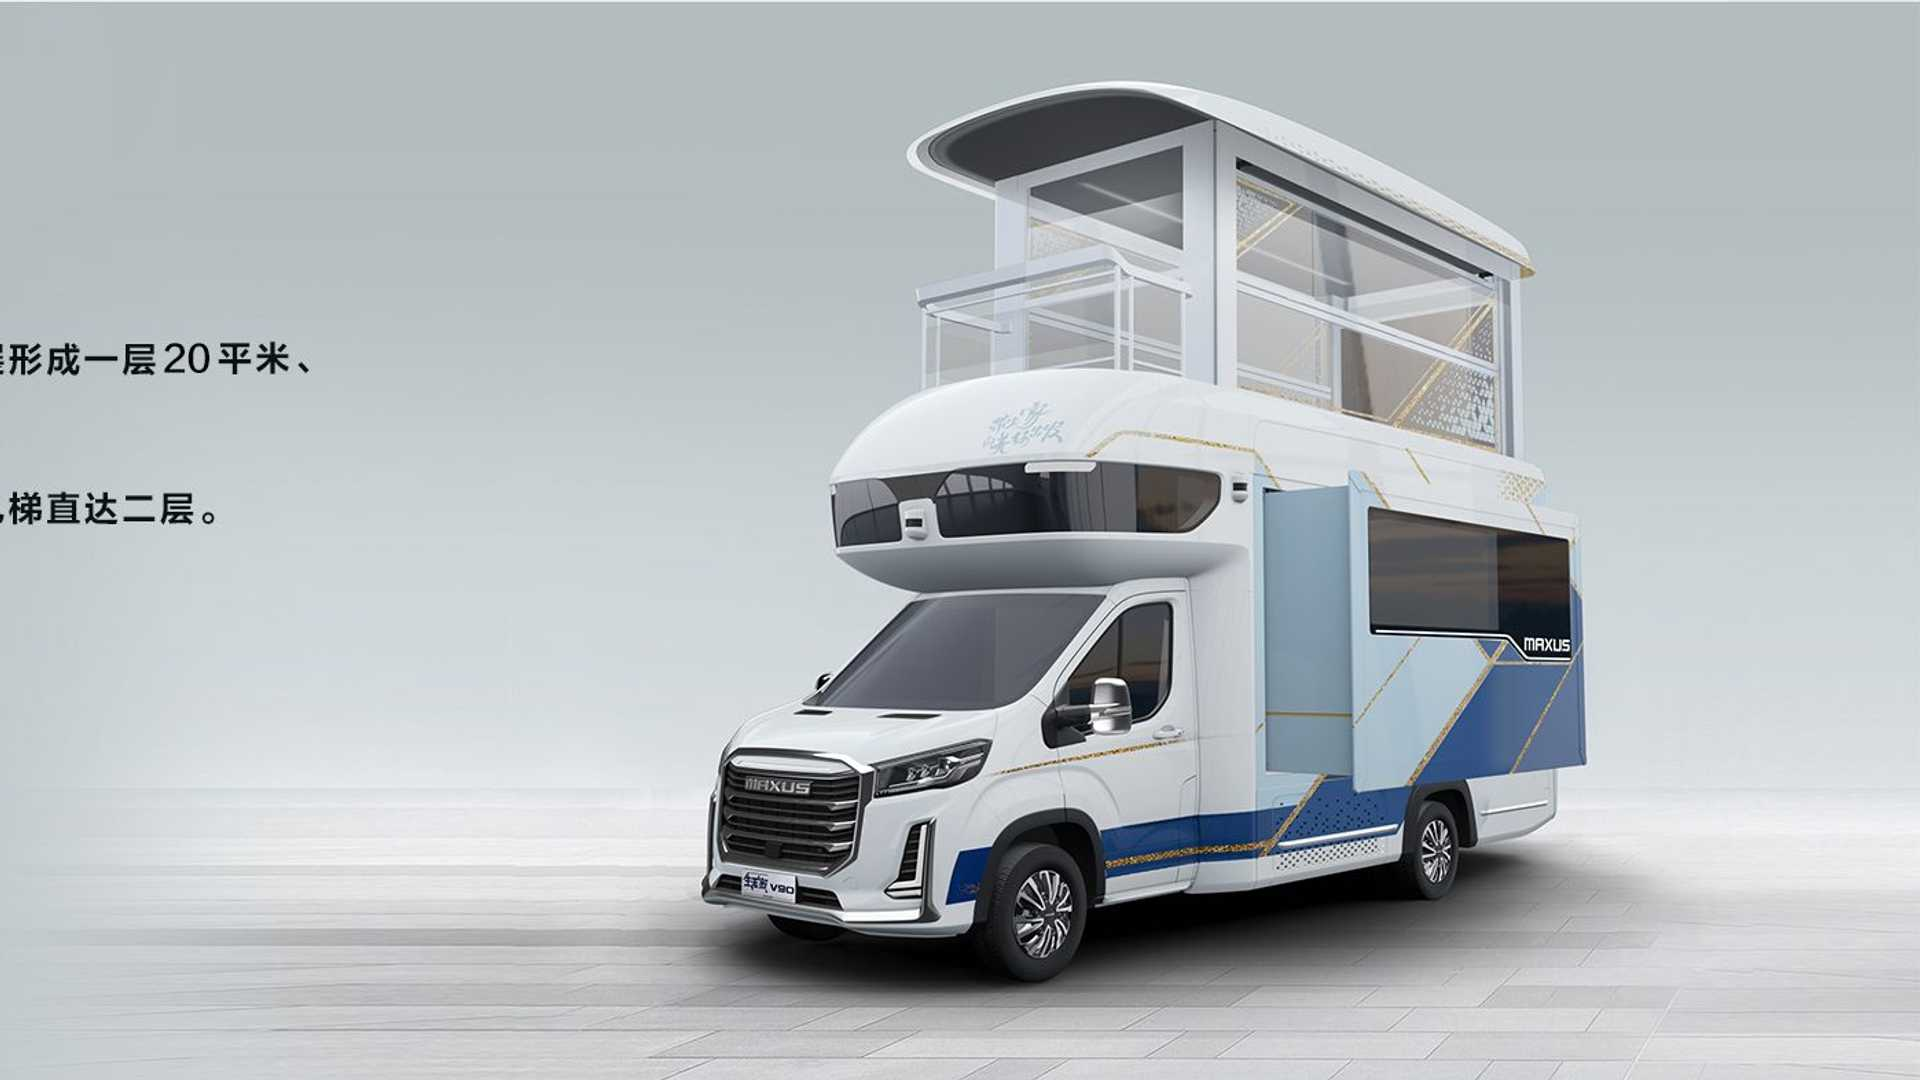 Meet the SAIC Maxus Life Home V90 Villa Edition, the first RV we are aware of to come equipped with a full-fledged second floor, a balcony, and an elevator. How's that for innovation?